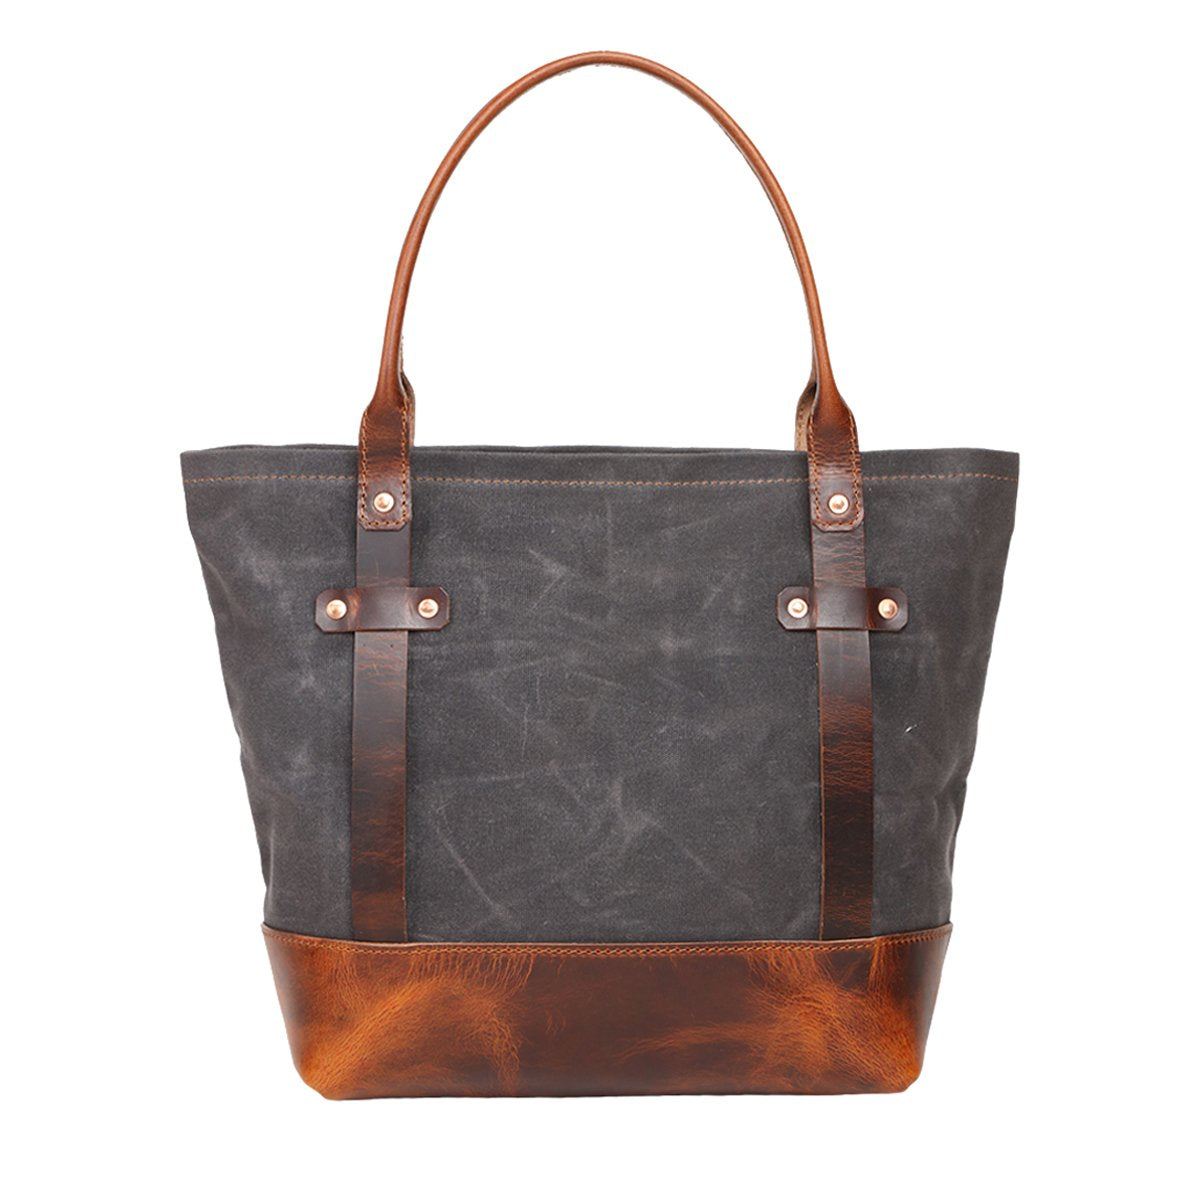 Maryland Tote (Charcoal Grey)